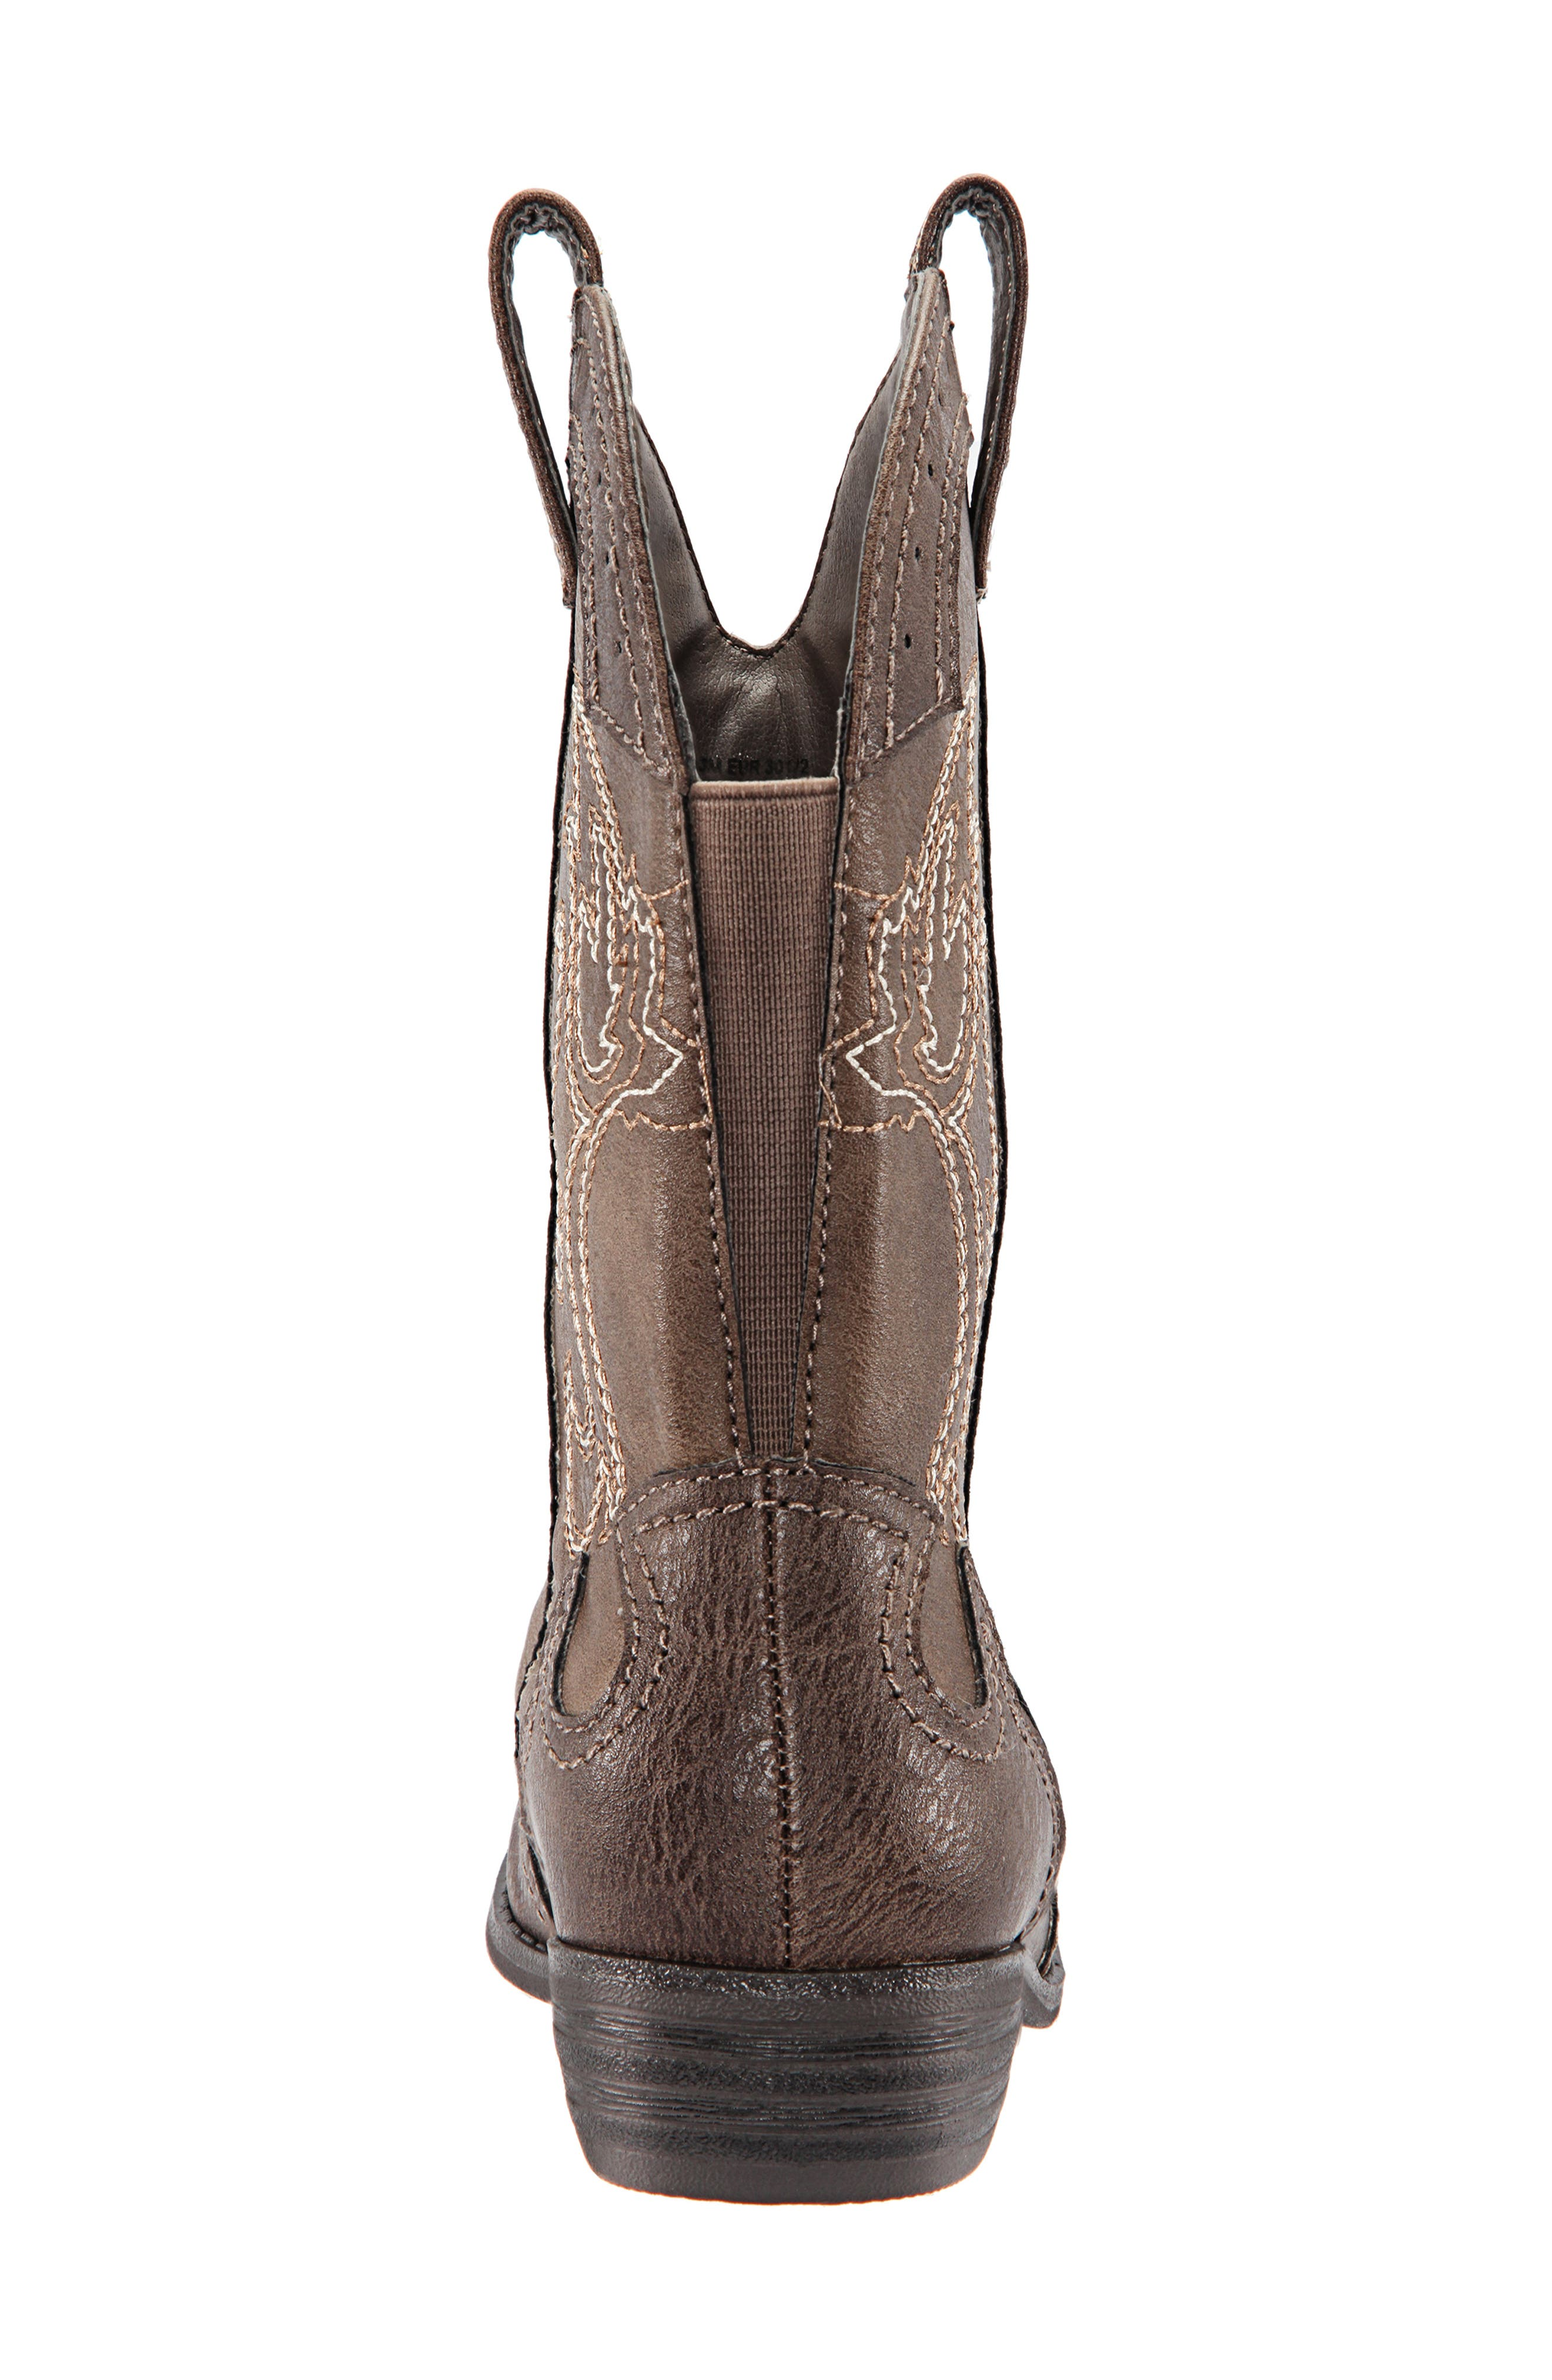 Beti Western Boot,                             Alternate thumbnail 7, color,                             BROWN DISTRESSED